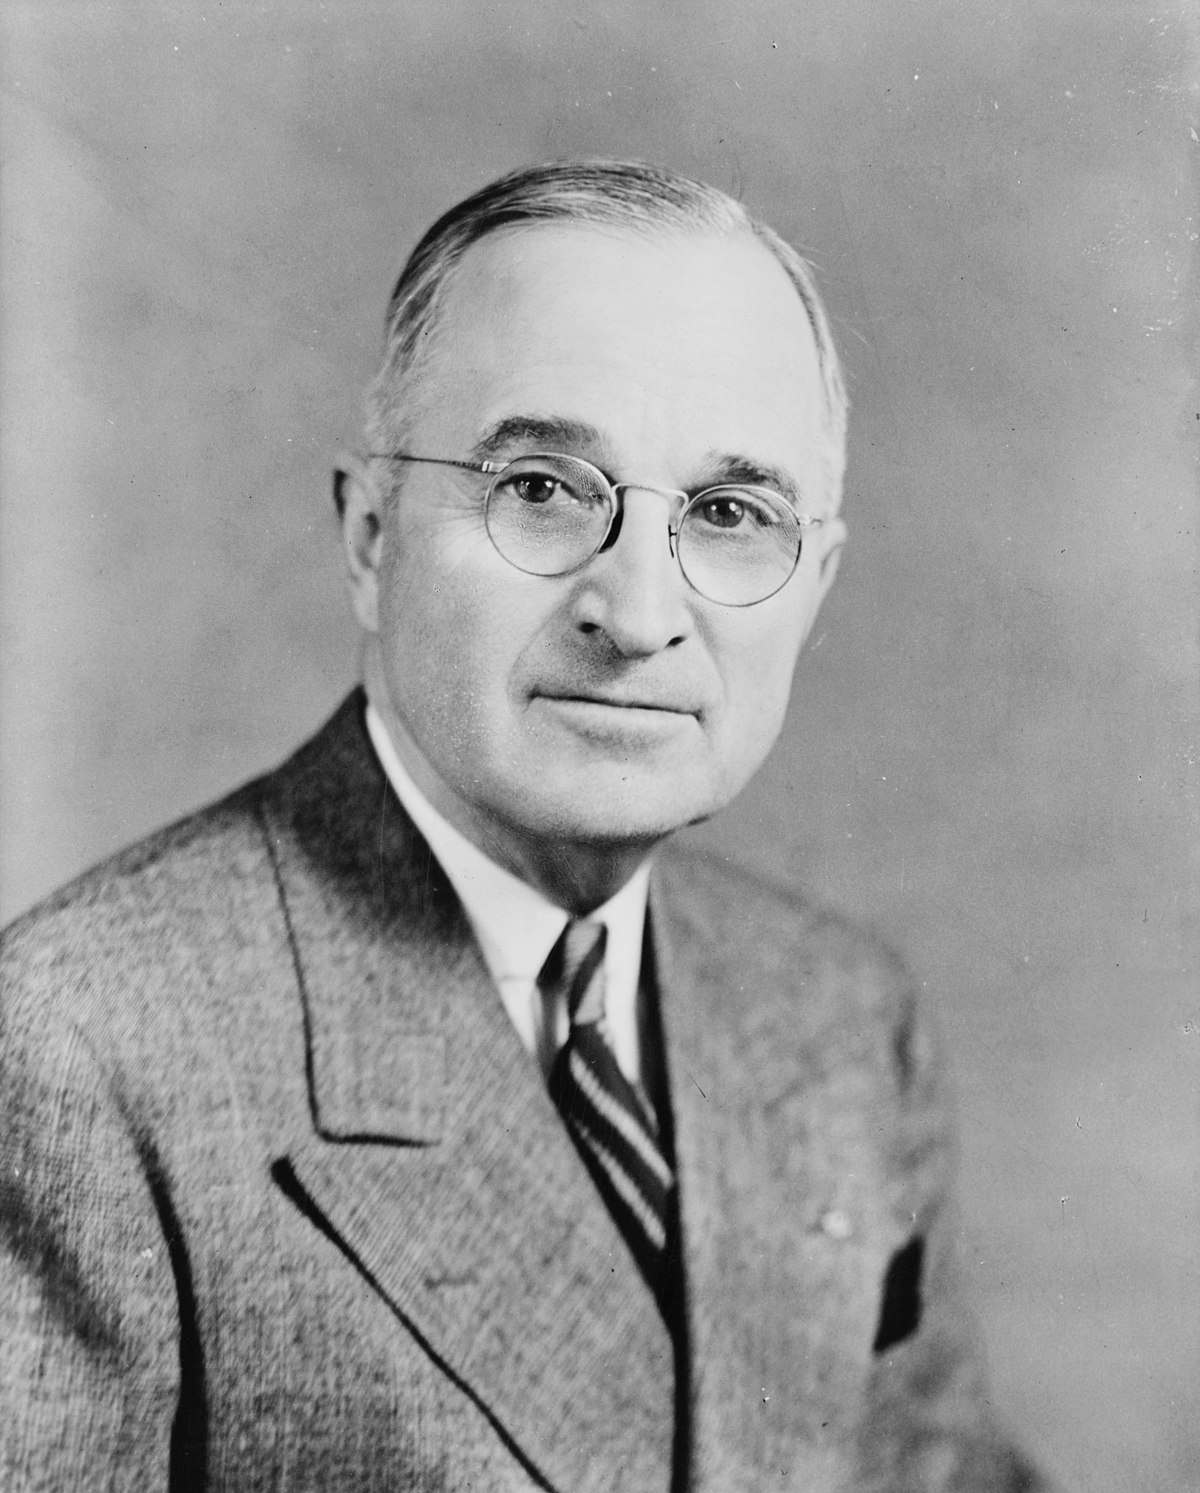 TIL that after his presidency, Harry Truman refused to join any corporate boards or do commercial endorsements, feeling that using the presidency for financial gain would diminish the integrity of the office. Congress eventually passed the Former Presidents Act to pay him a pension.